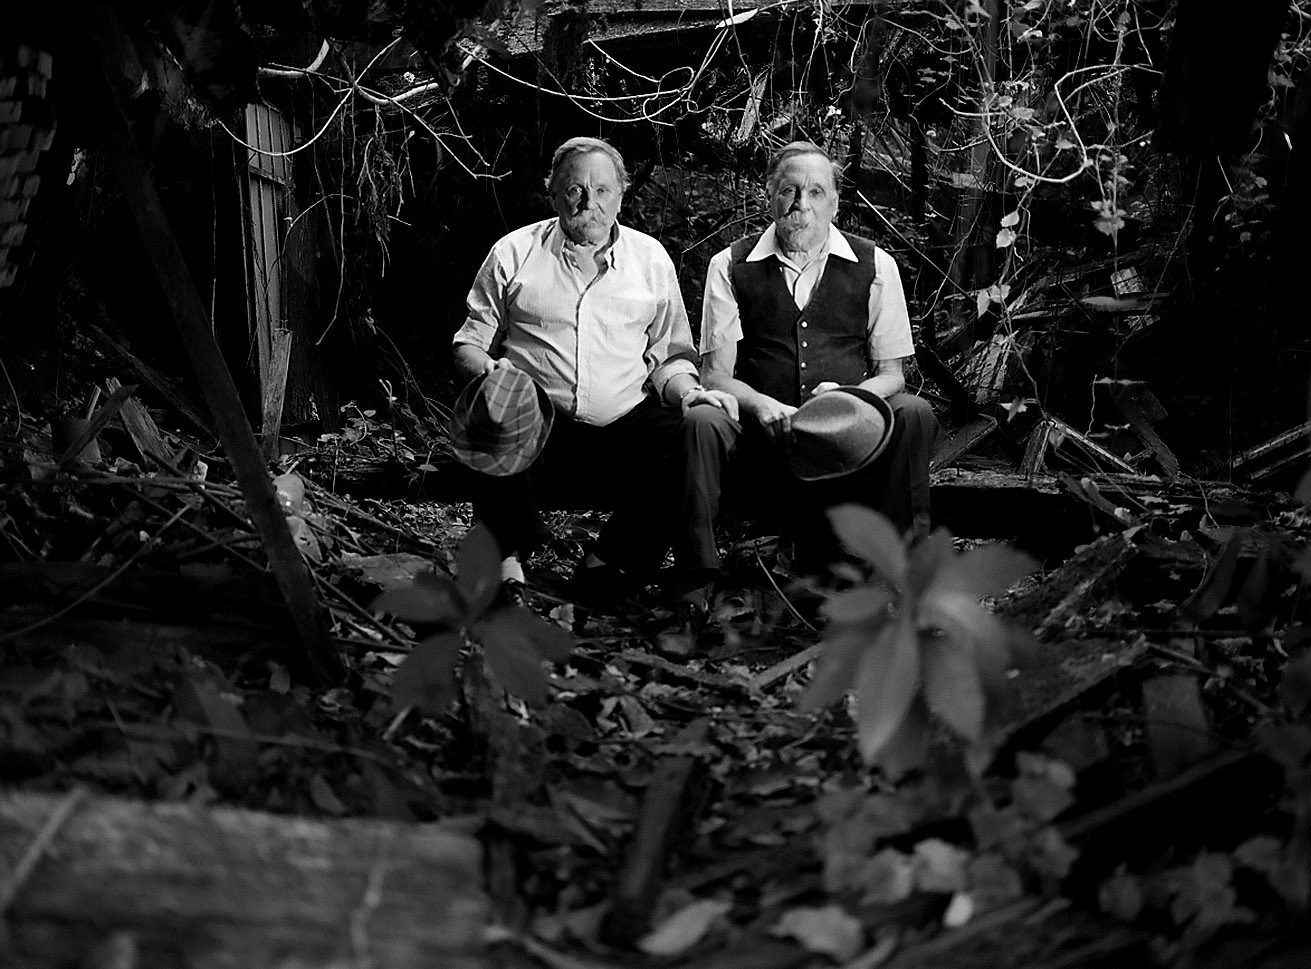 Noga Shtainer, Nelson and Norbero, 2010, Archival pigment print, Edition of 5 + AP 70 x 90 cm 2,200$ (2)